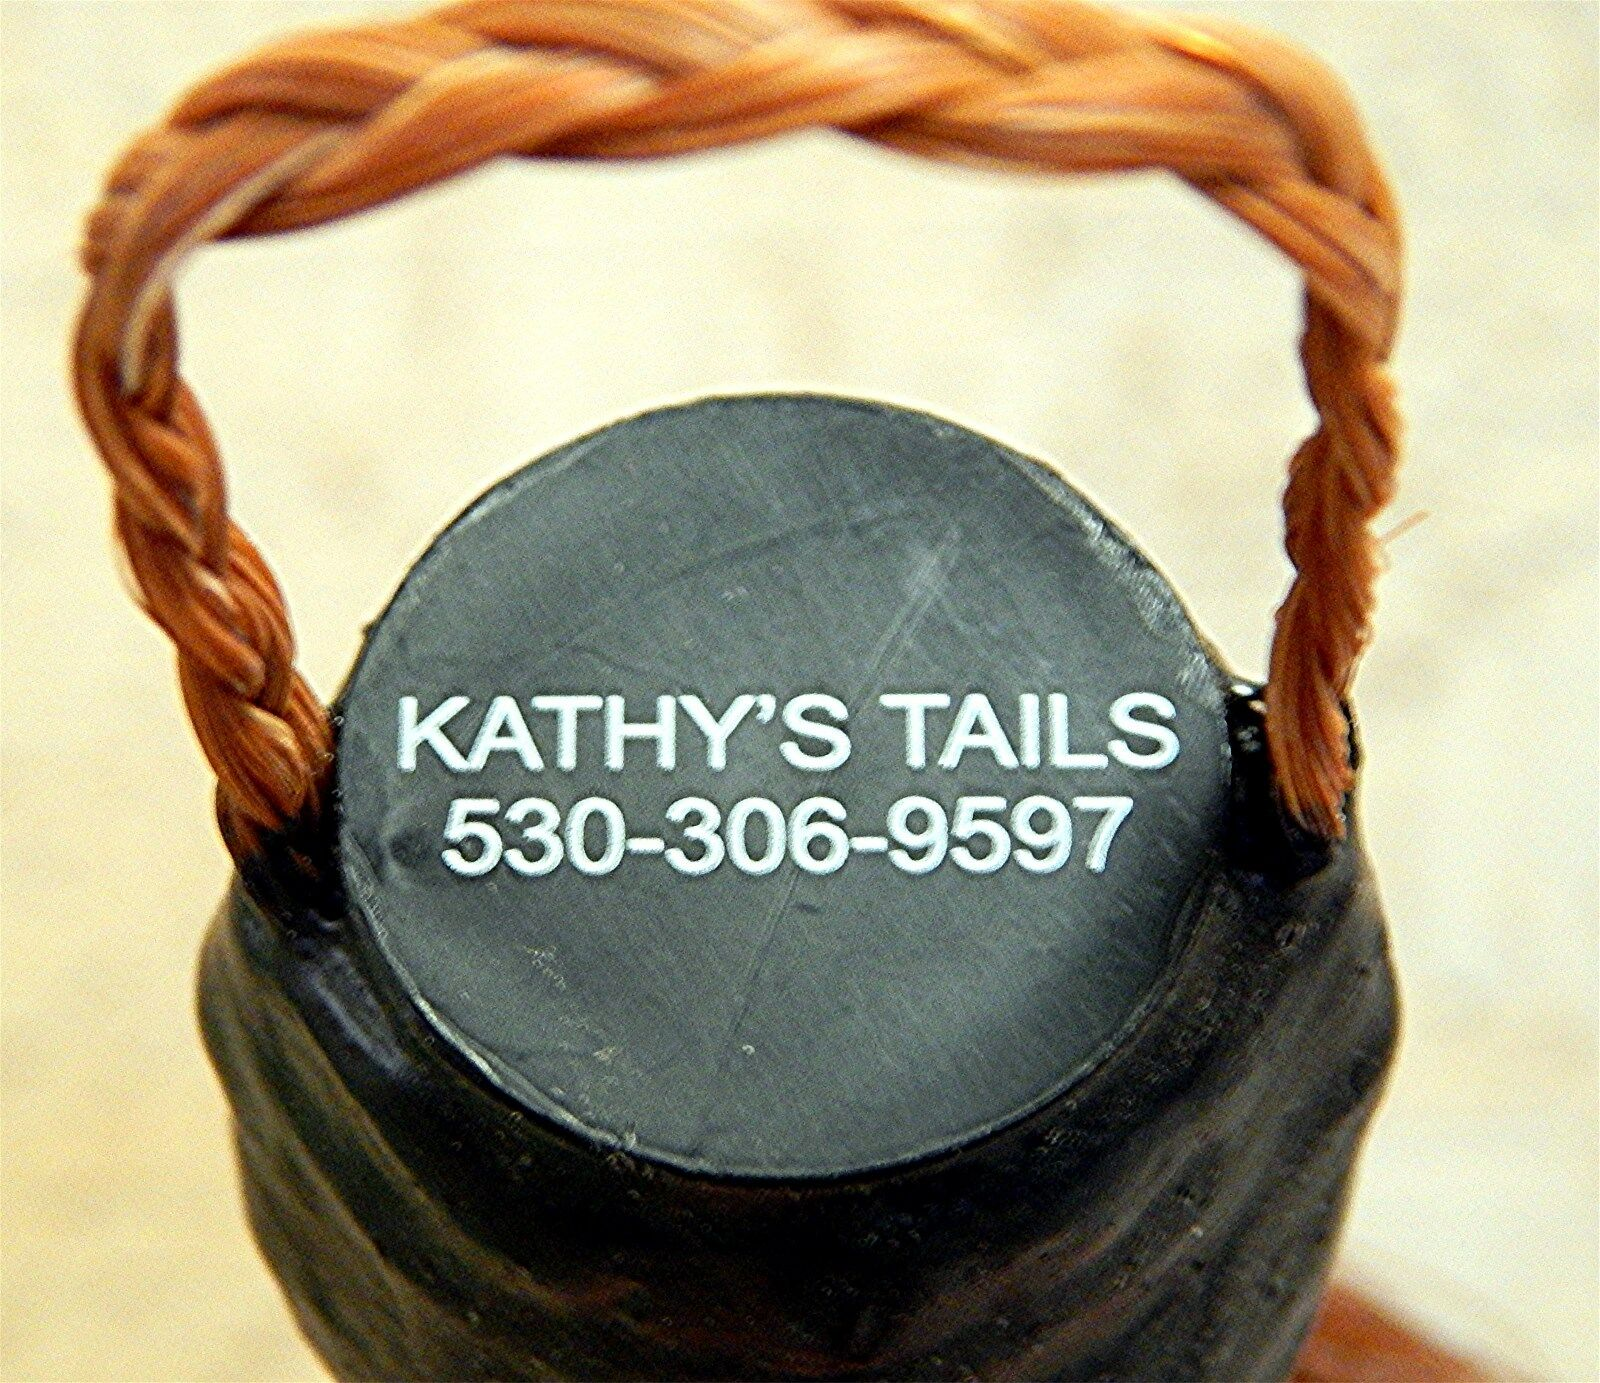 New Tail Extension Drk Chestnut 1lb by by by KATHYS TAILS Free ship&bag AQHA APHA PtHA 29a839